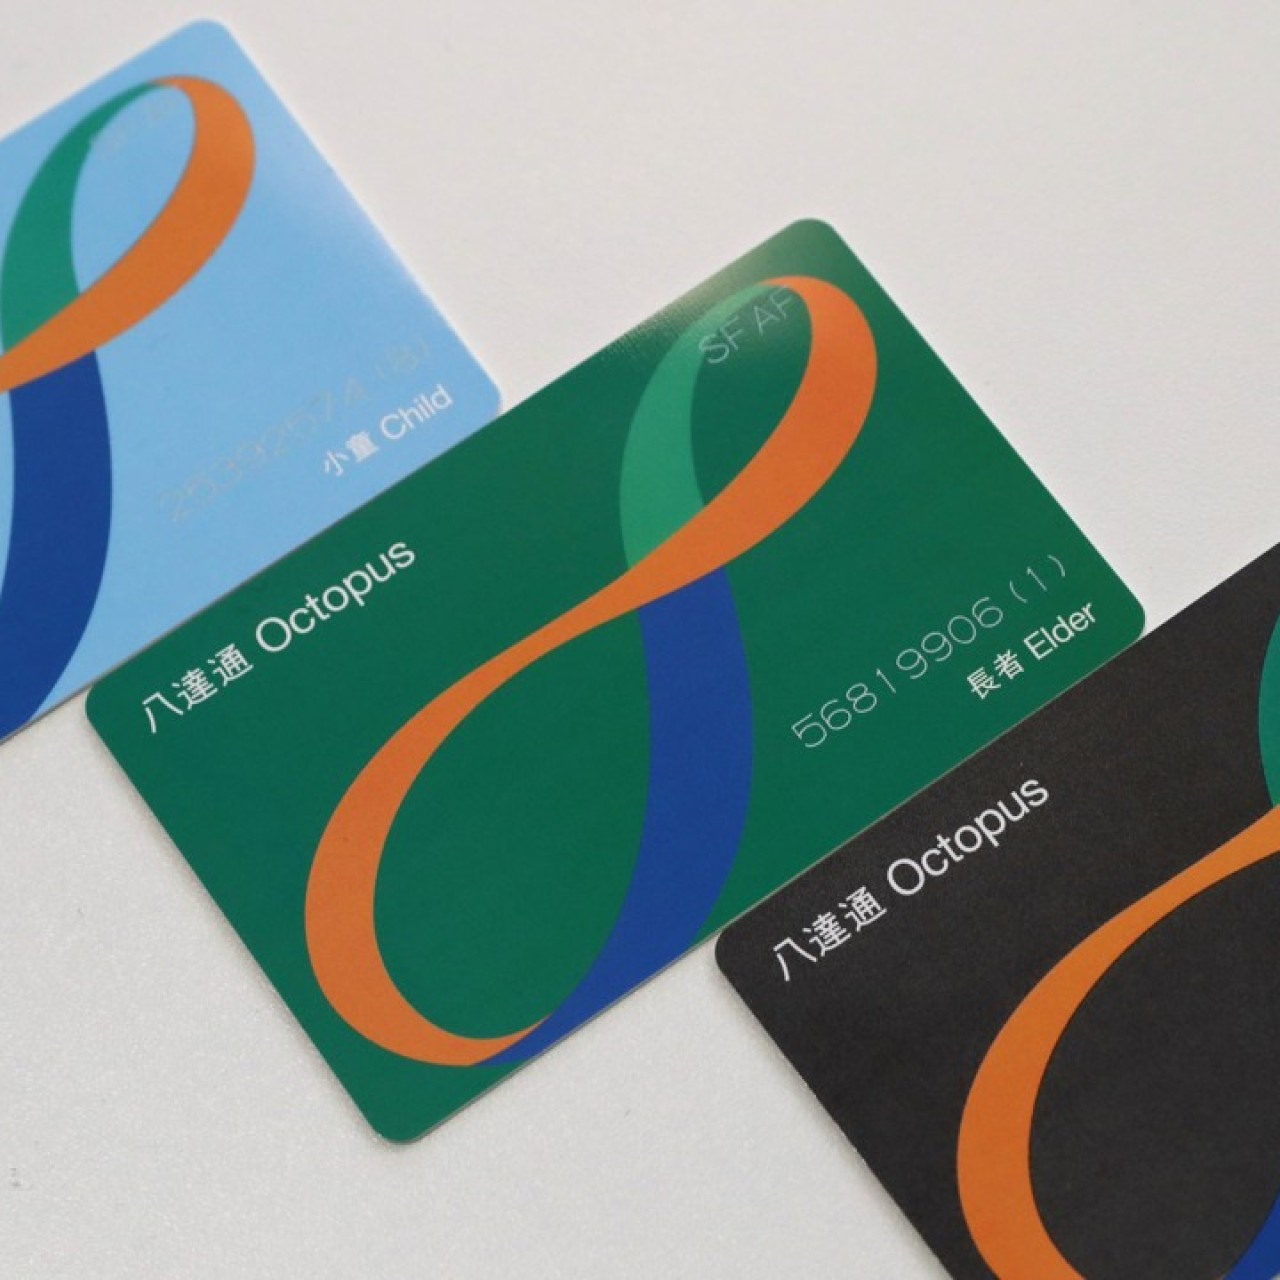 1 2 million first-generation Octopus cards to expire by 2019, as